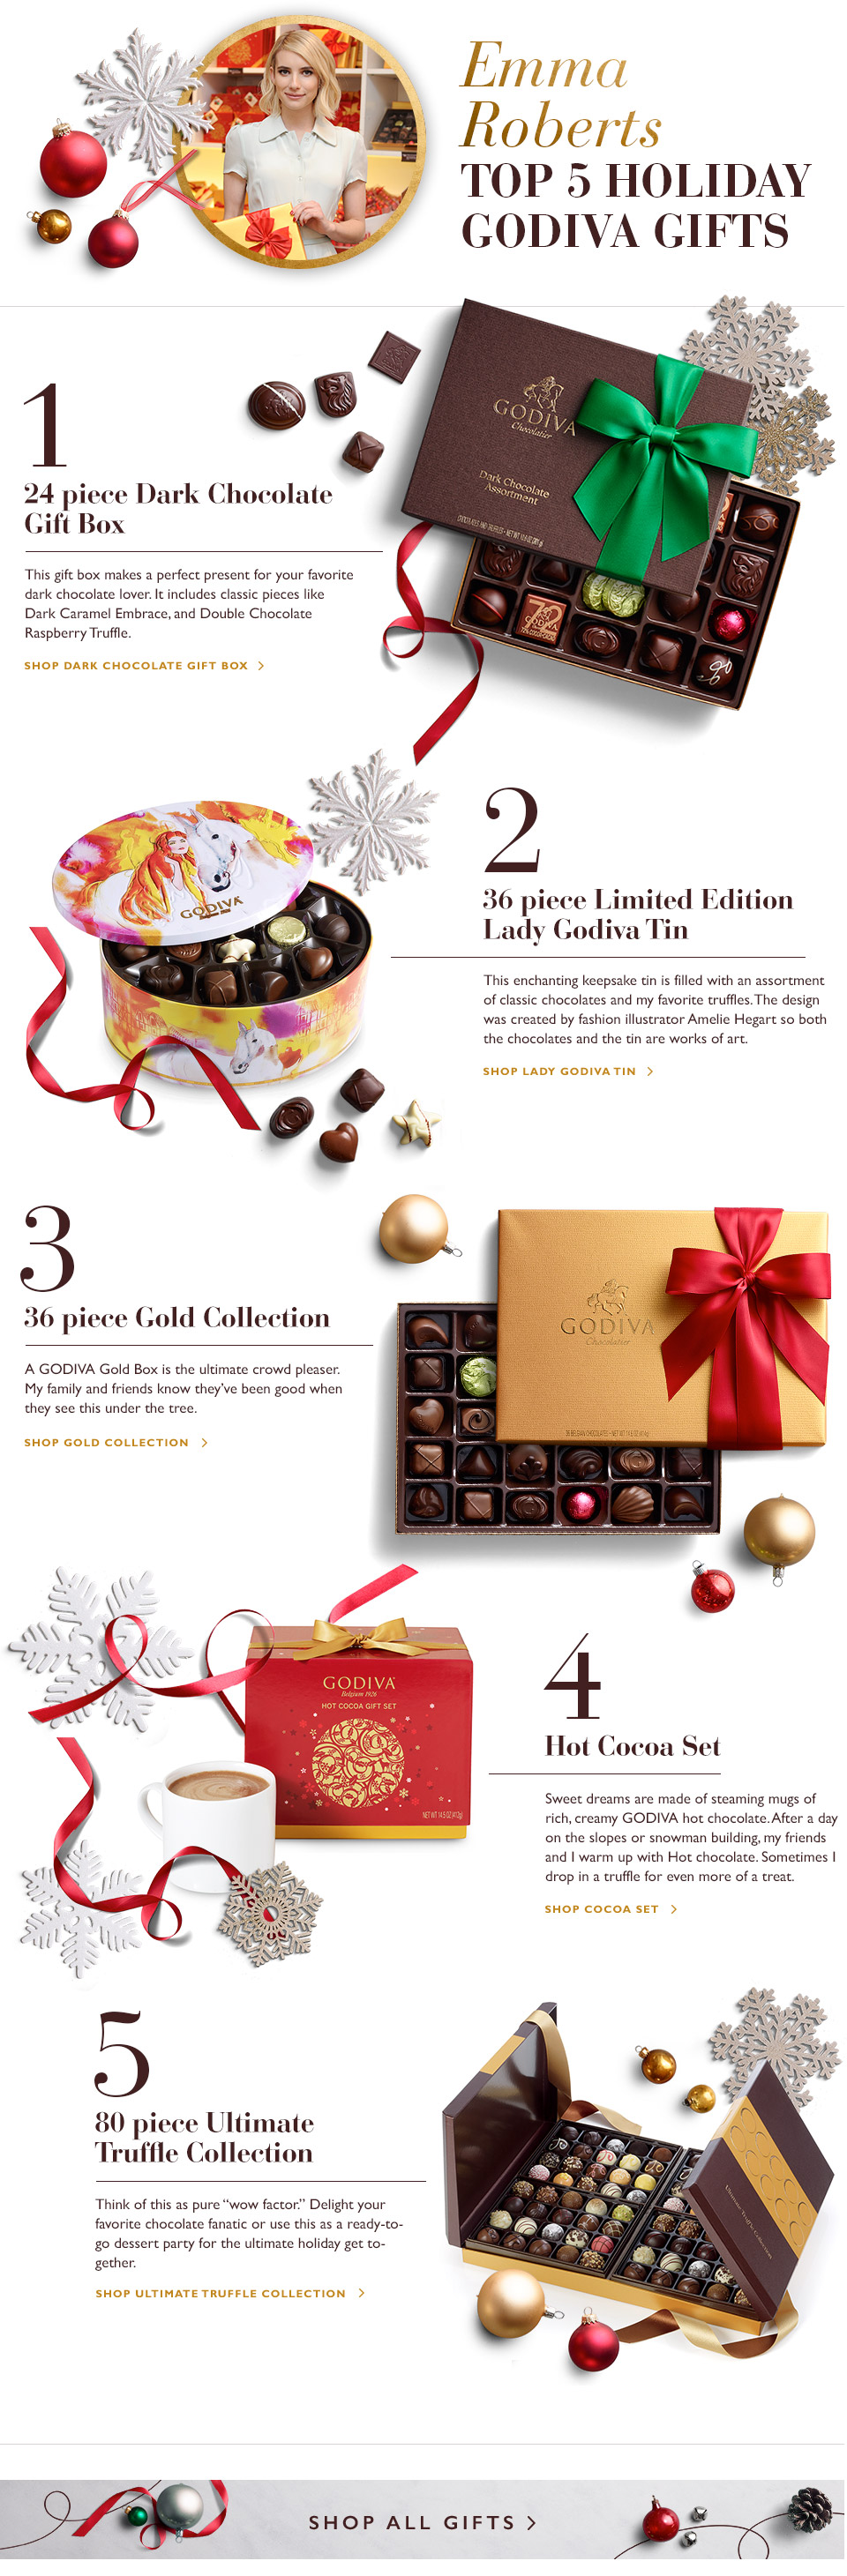 Emma Robert's Top 5 Holiday Gifts from GODIVA